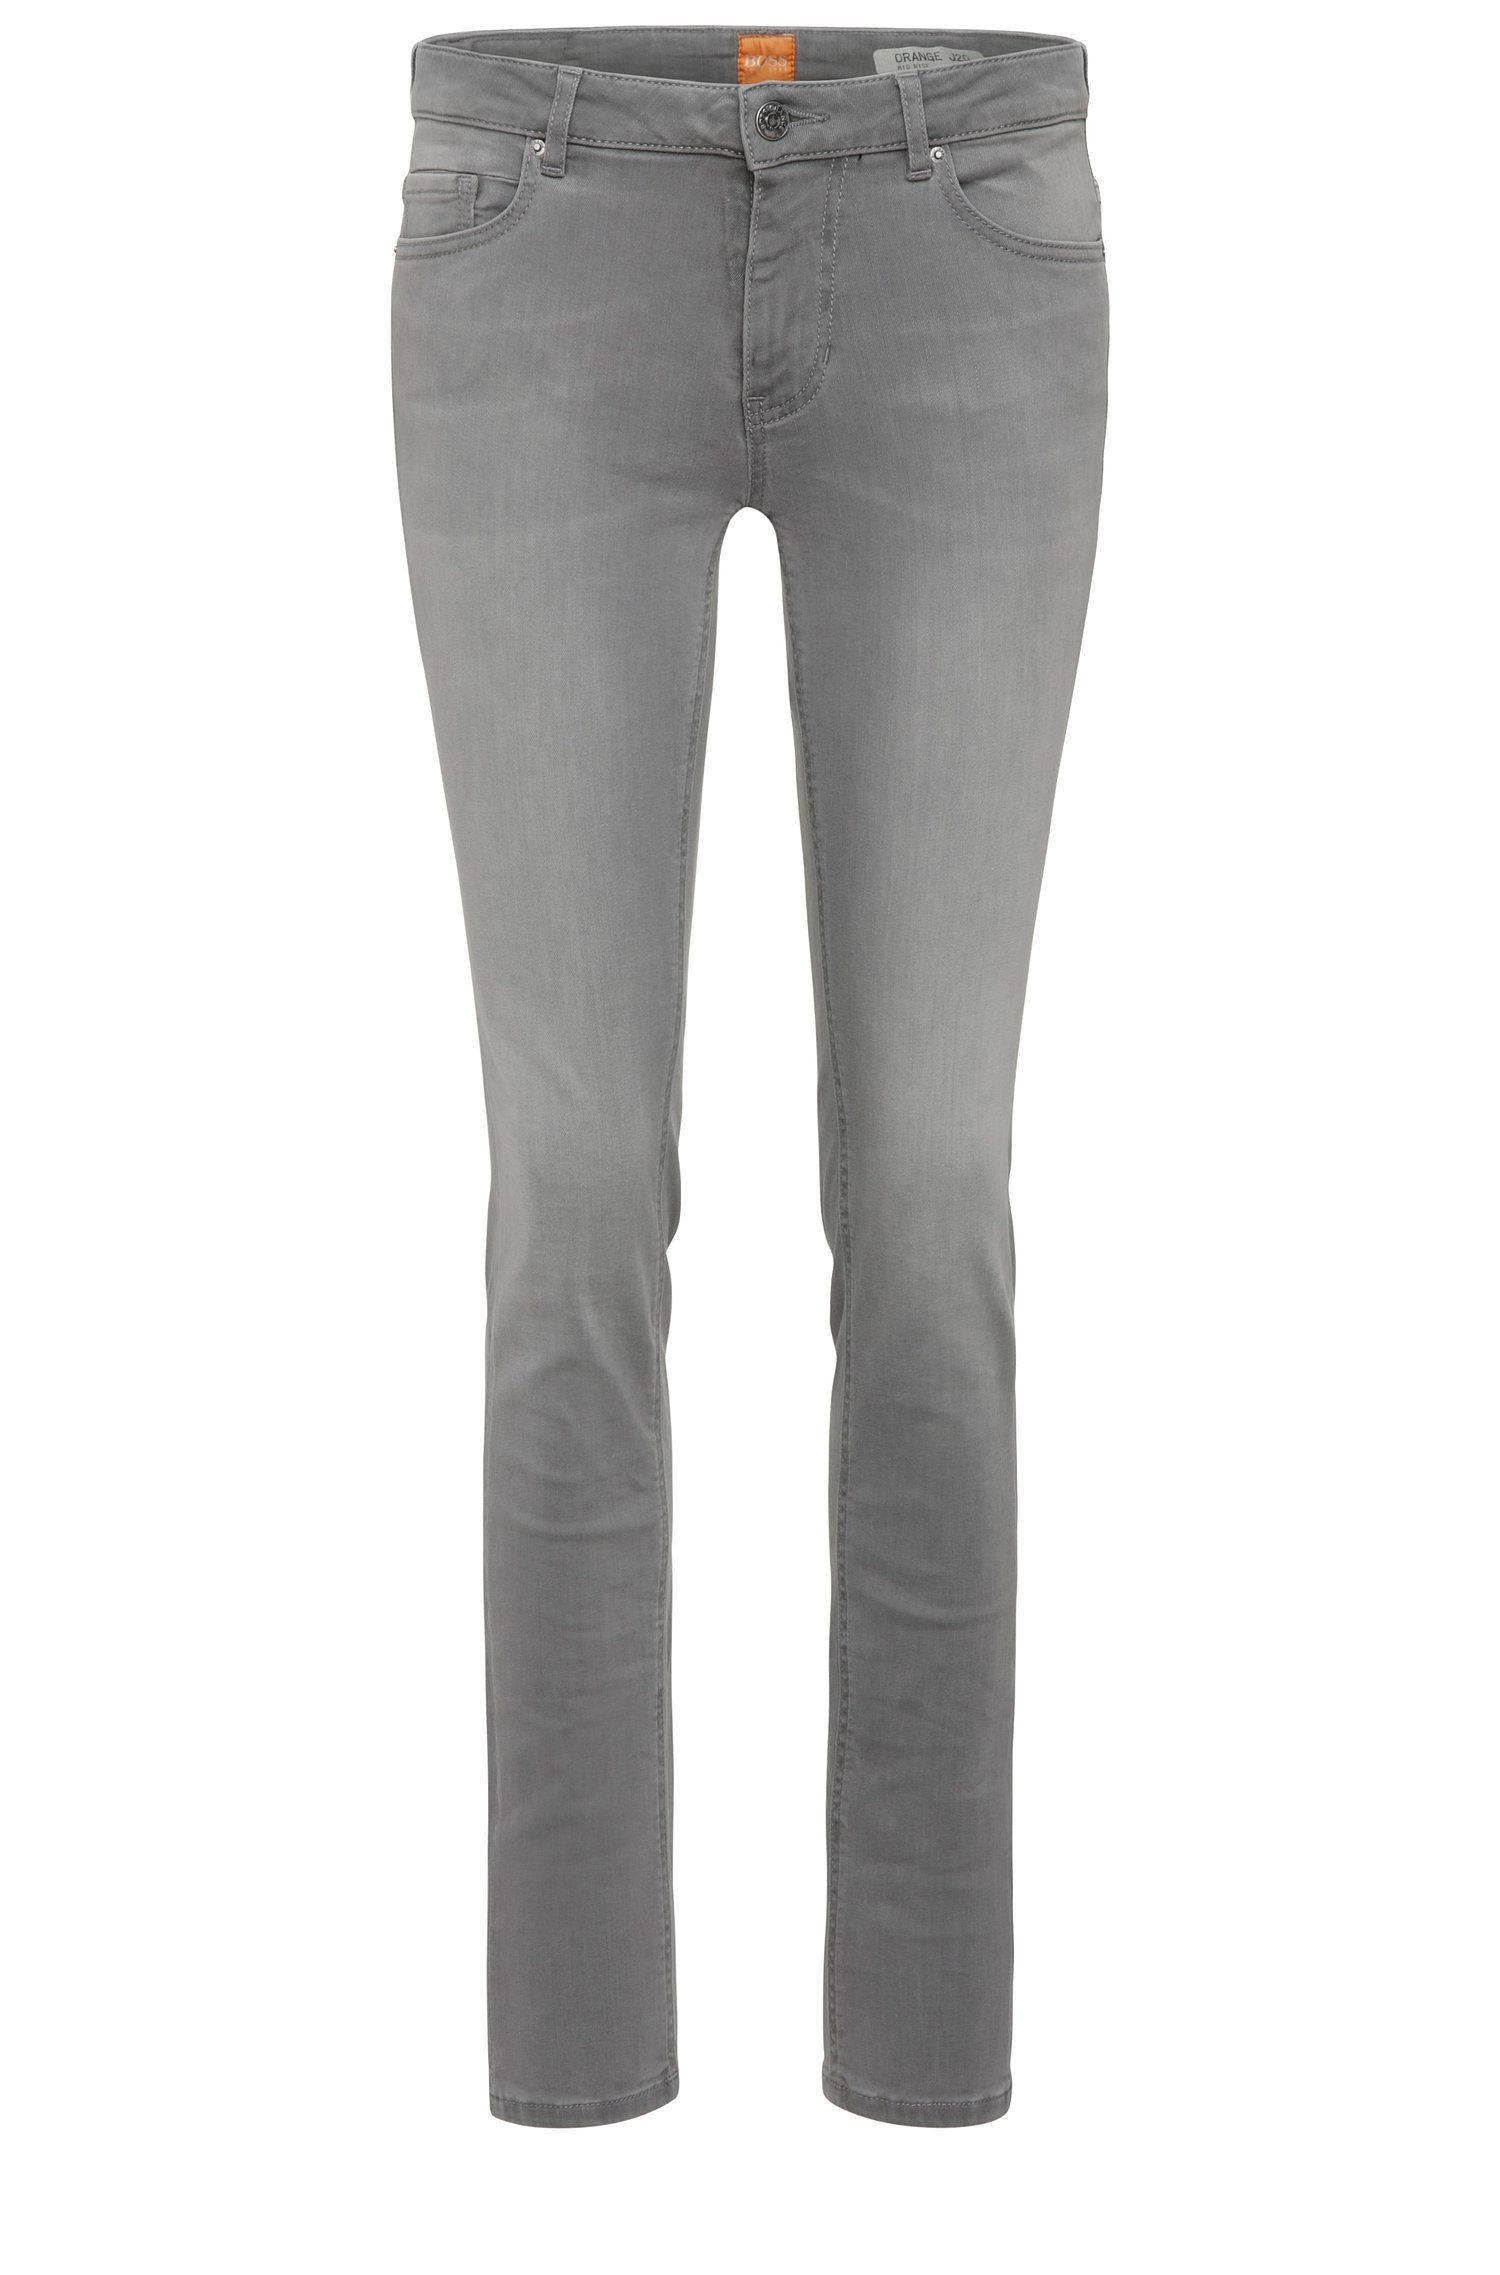 Jeans Slim Fit en coton mélangé extensible : « Orange J20 Sidney »